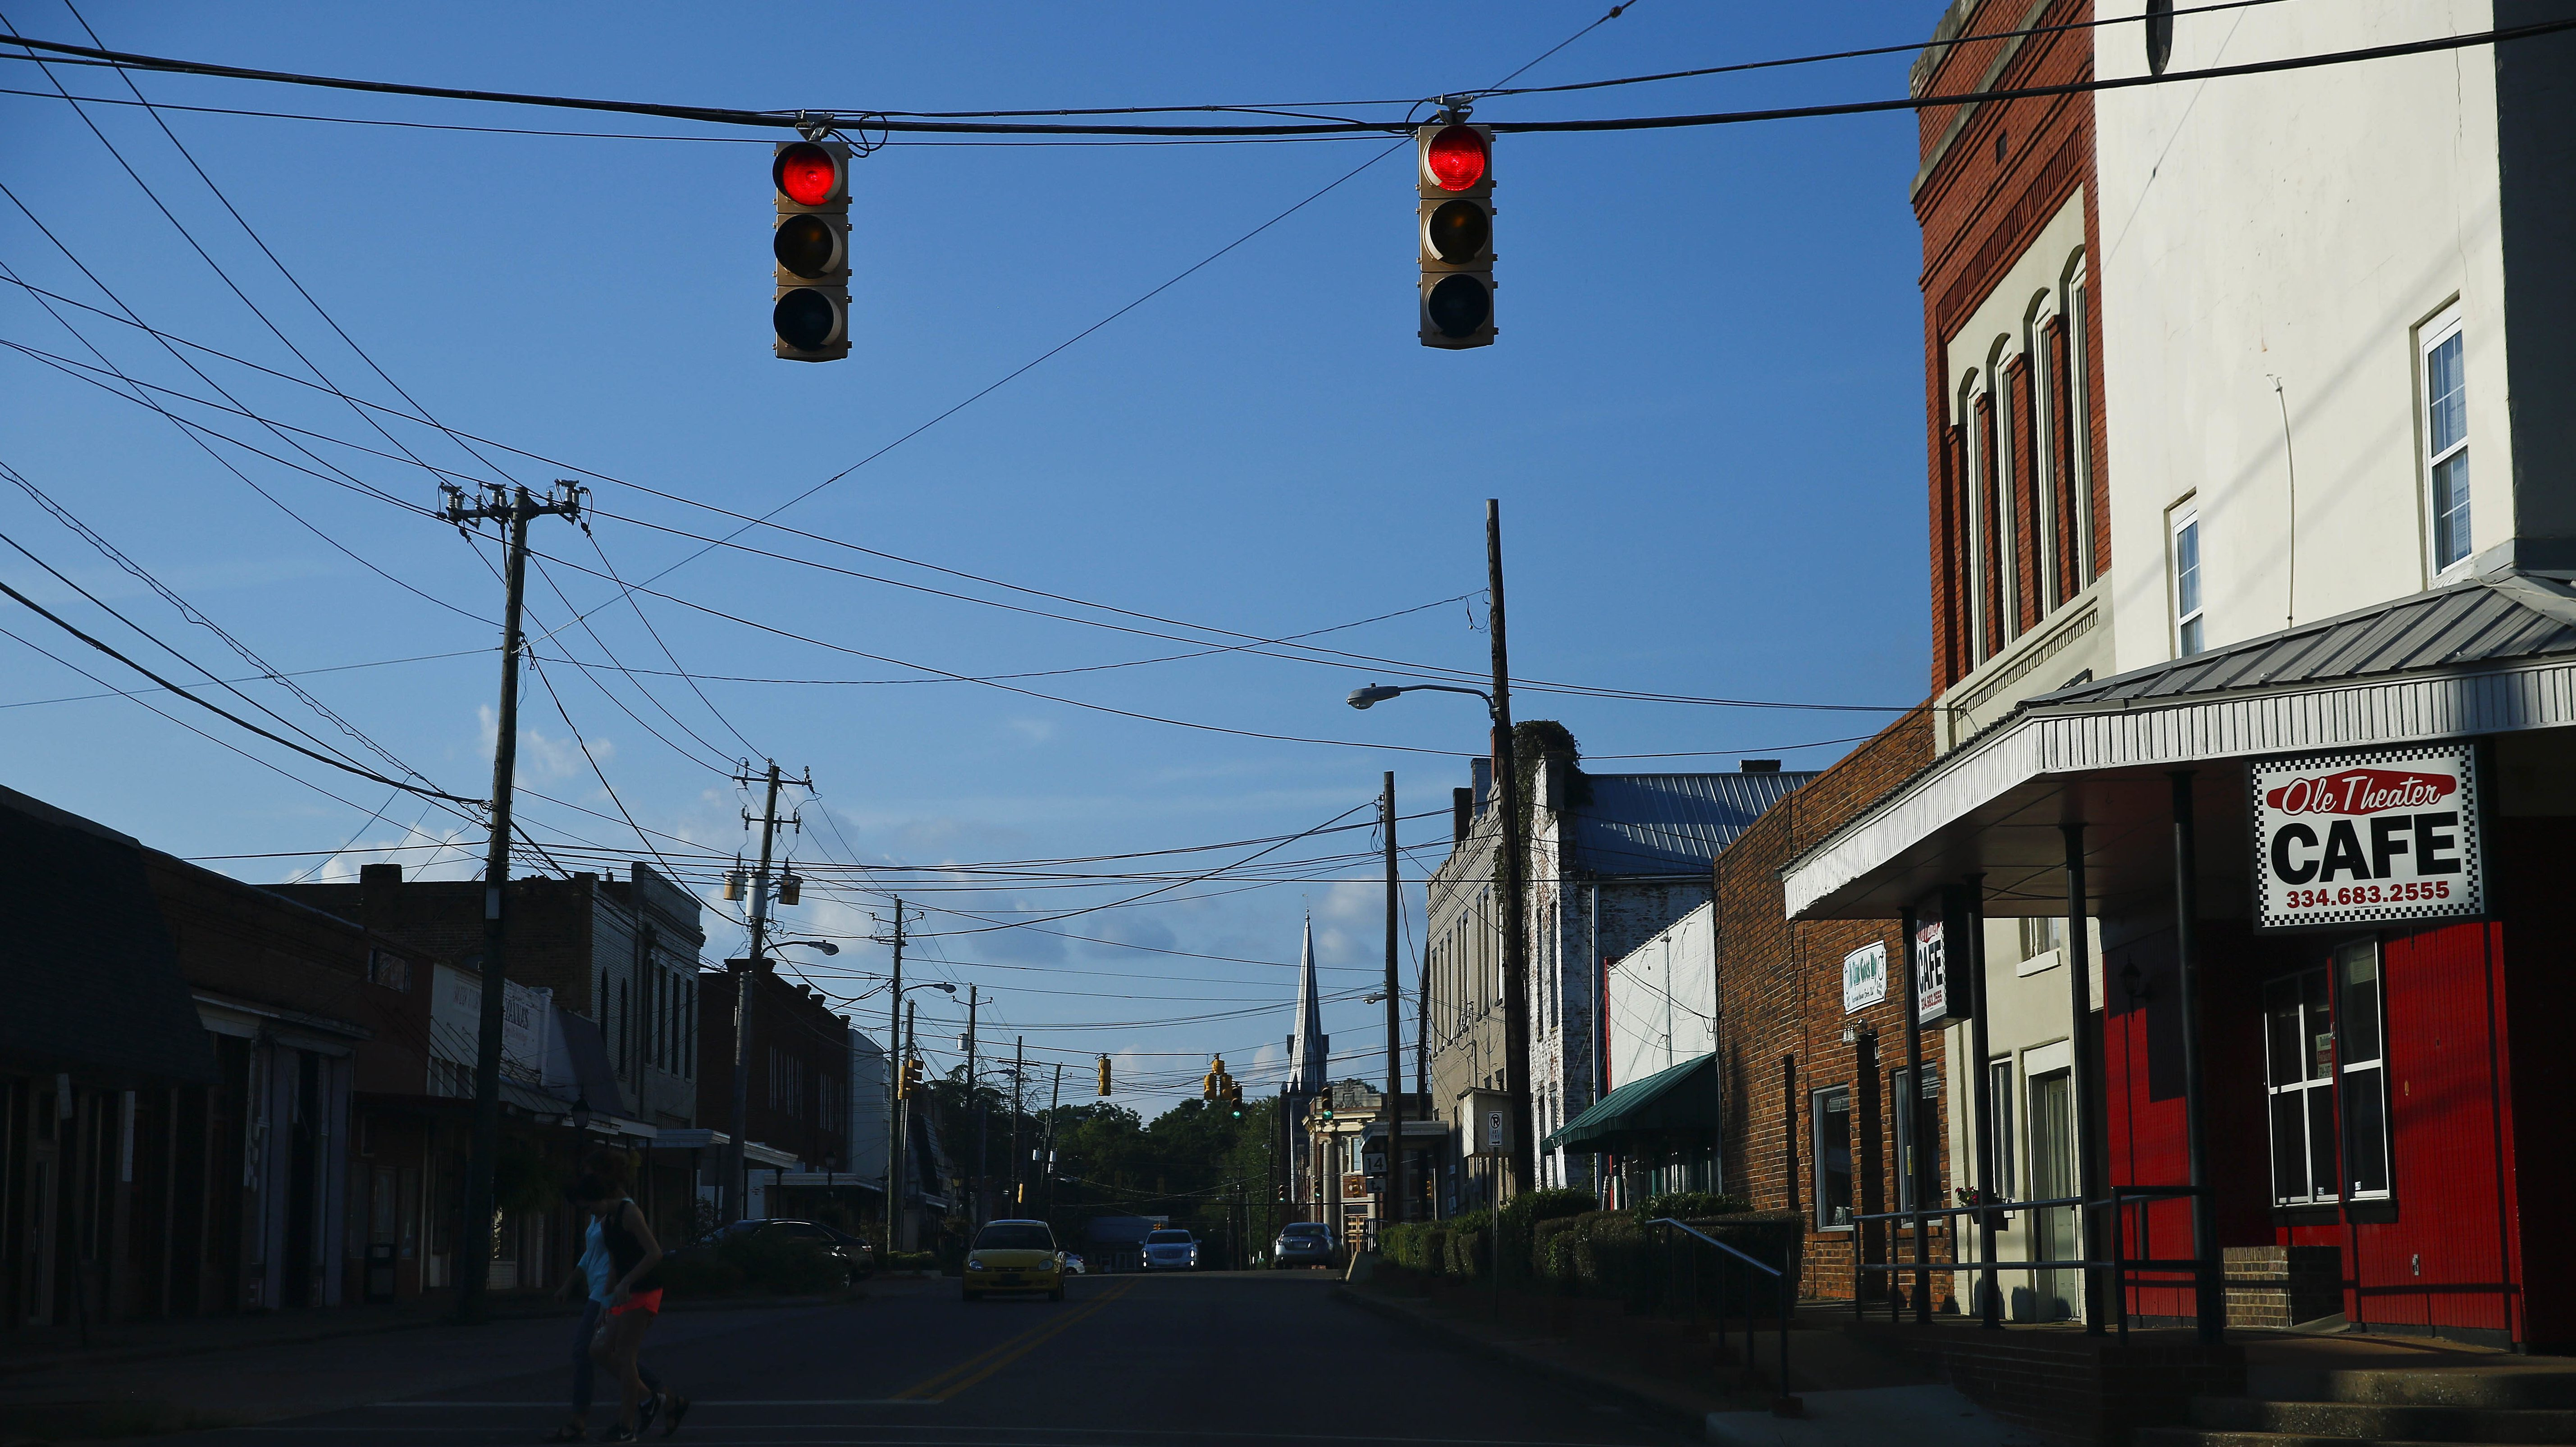 Two residents cross one of the main streets in downtown Marion, Ala., Wednesday, Aug. 24, 2016. Stretching from east Texas to southern Virginia, the impoverished area known as the Black Belt is heavily populated by blacks who supported Barack Obama. Now, many worry about President Donald Trump, echoing fears of other black Americans. (AP Photo/Brynn Anderson)